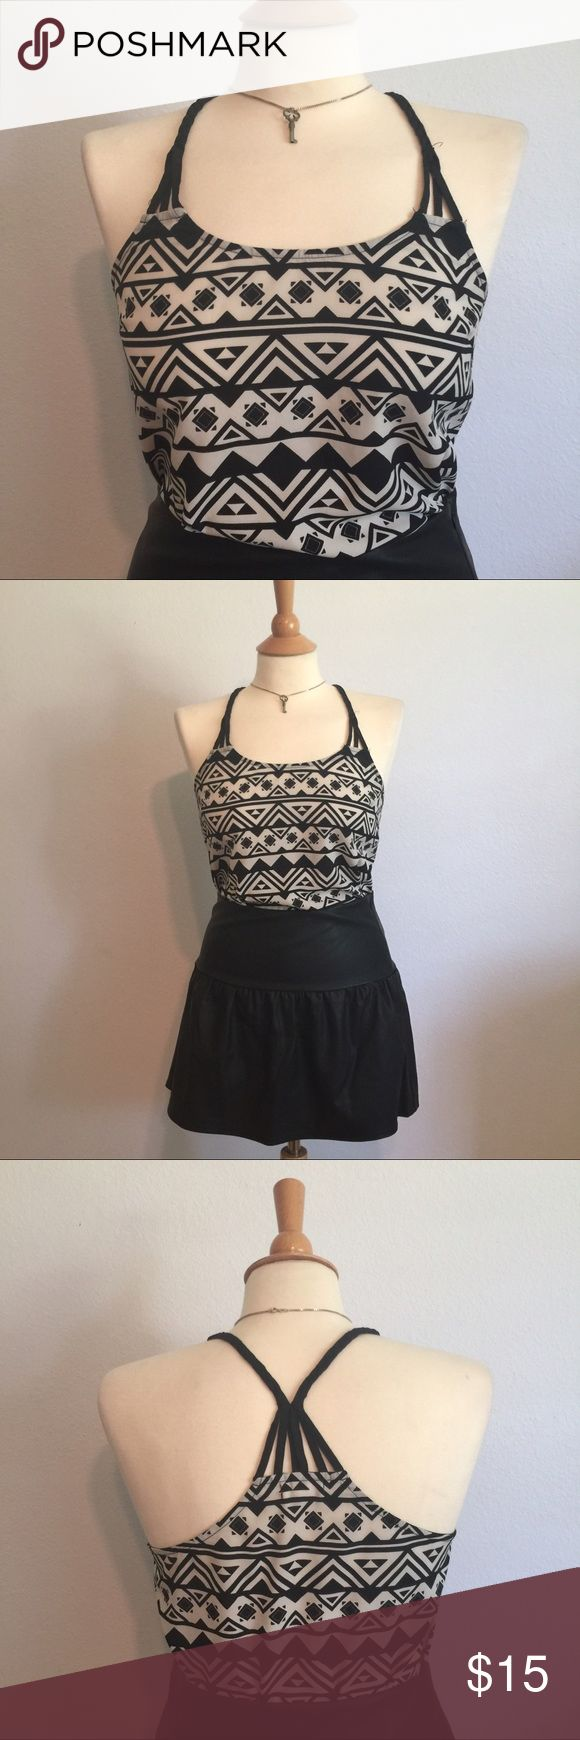 Aztec print braided Strappy back flowy tank S Super cute black and white Aztec print tank! This is light and flowy and perfect for summer! Cute straps with strappy back and braided straps! Cute with jeans or tucked into a skirt! Size small. Brand e (hanger) m. Gently used but no noticeable flaws! e (hanger) m Tops Tank Tops